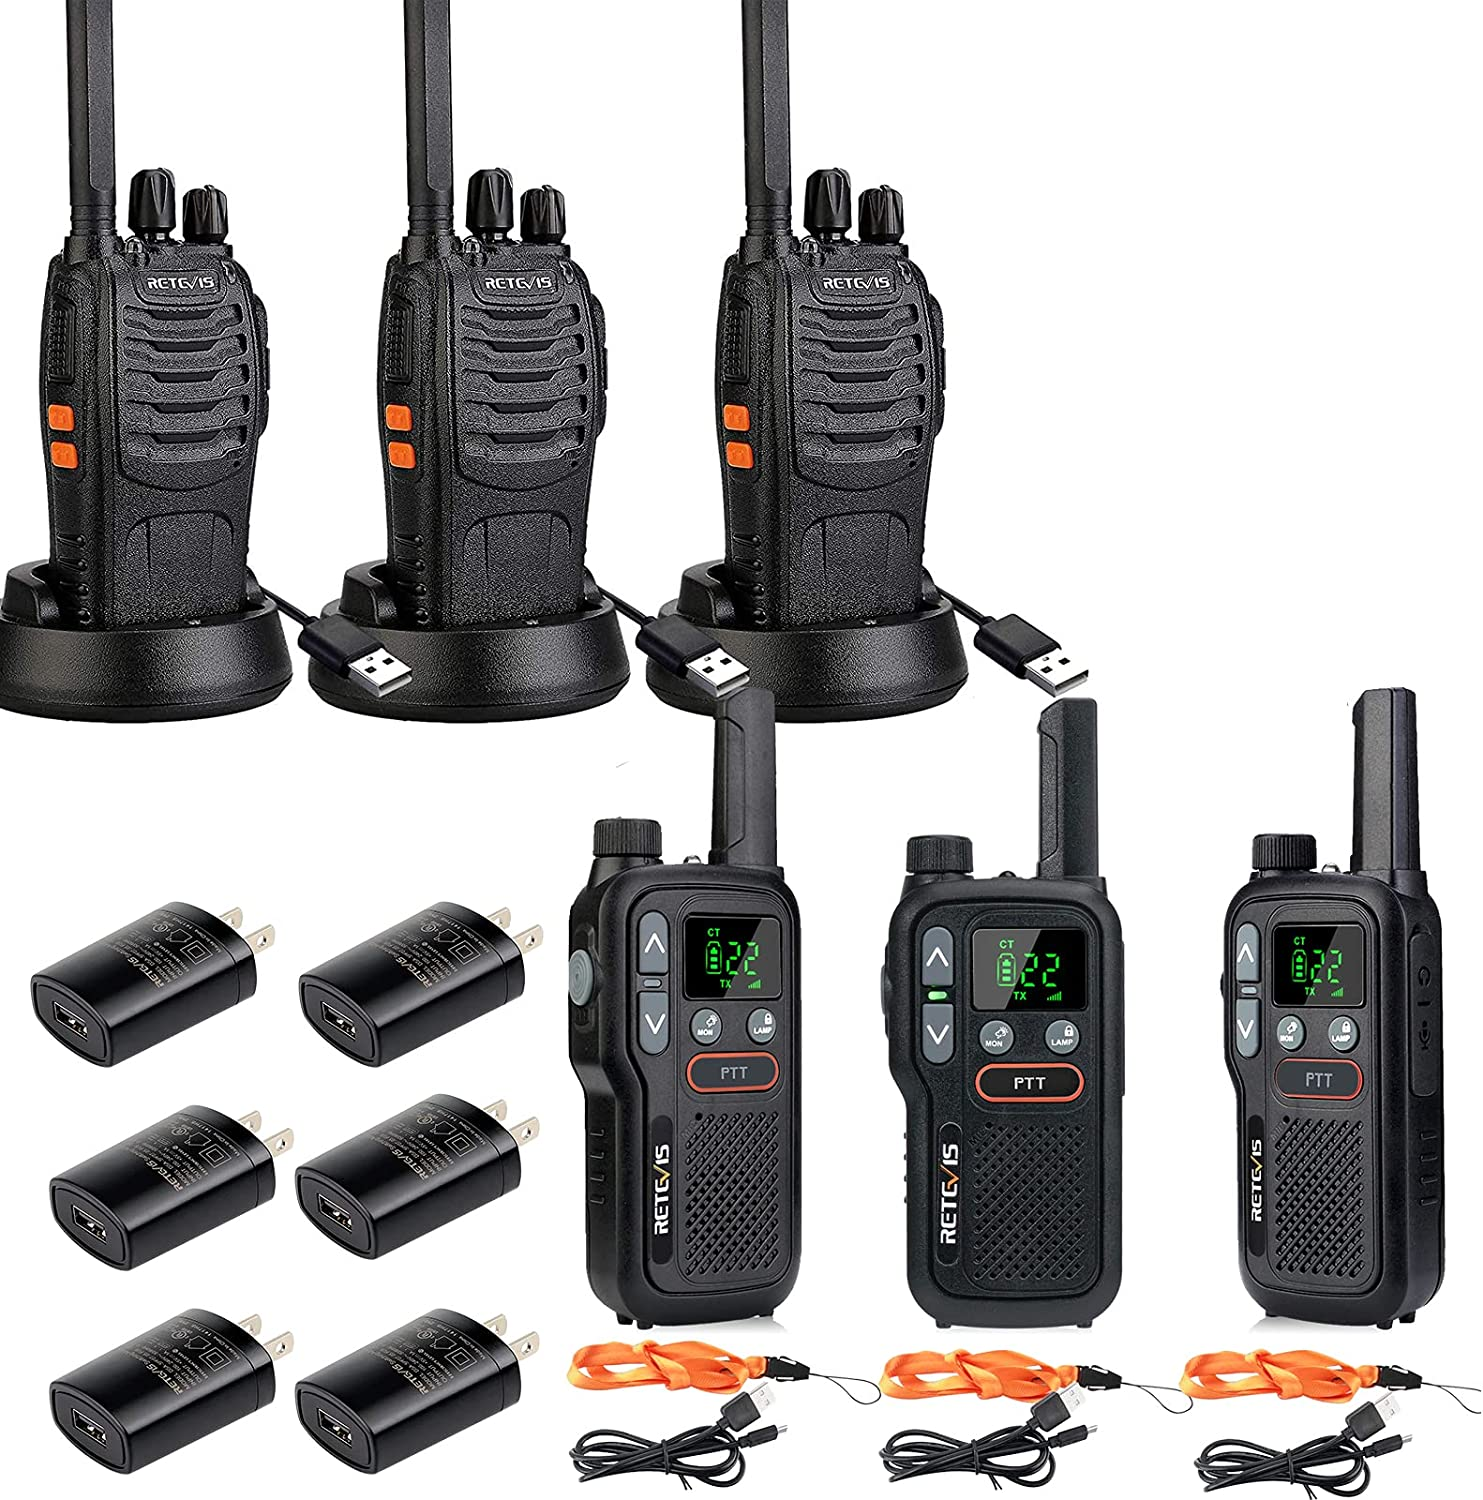 Retevis H-777 Walkie Talkies for Adults Fort Worth Mall Emergency Flashlight Year-end annual account Two